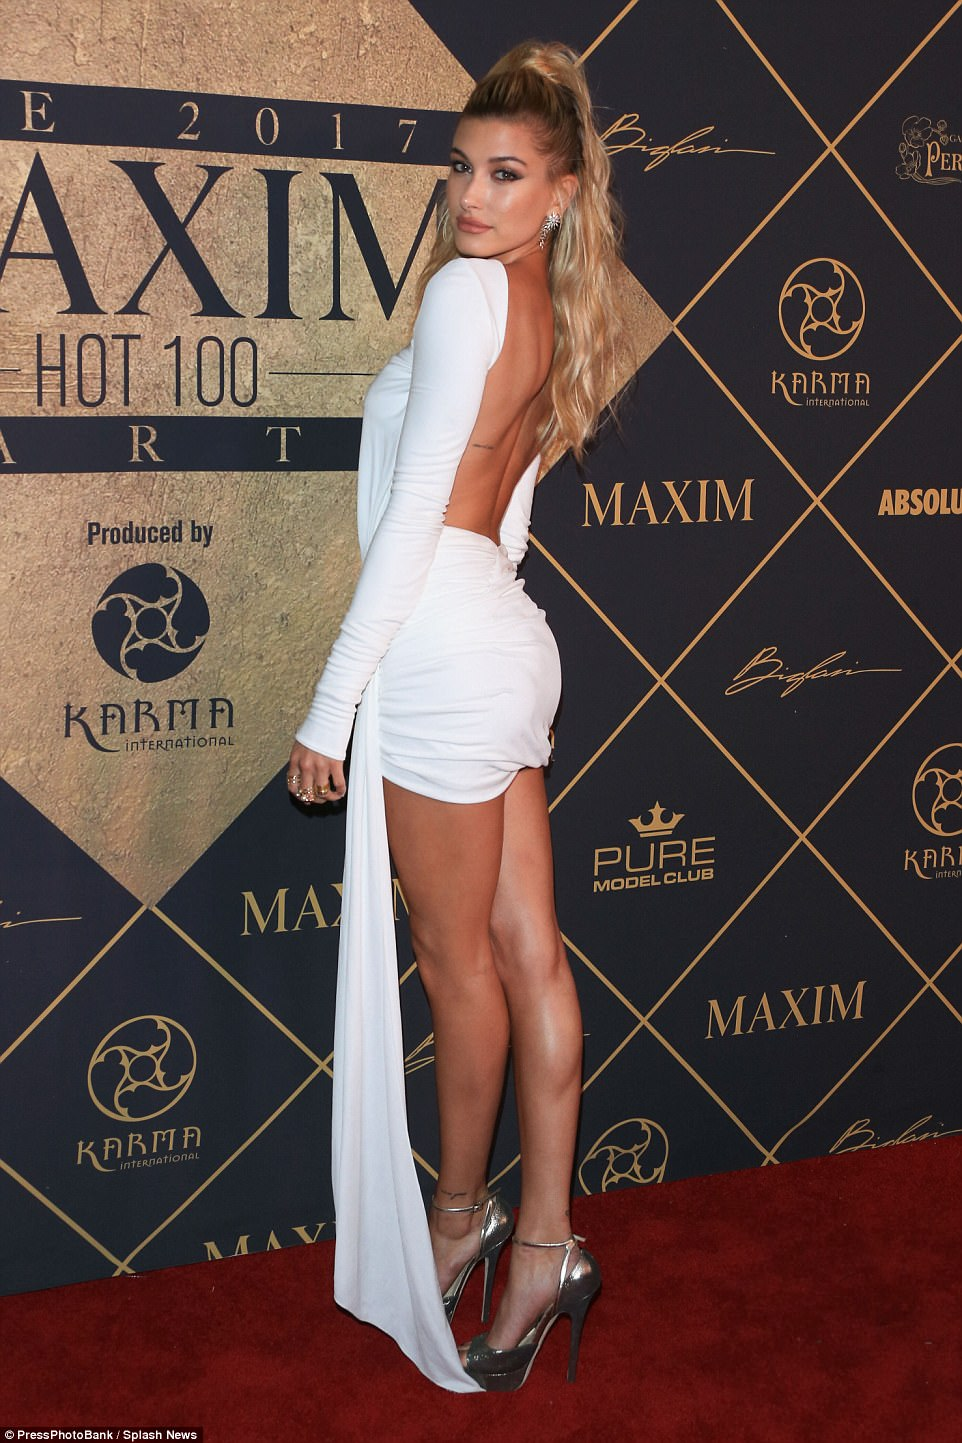 Hailey Baldwin hosts the 2017 Maxim Hot 100 Party Experience. Purchase Tickets and Tables to the Hollywood Palladium on July 21, 2018